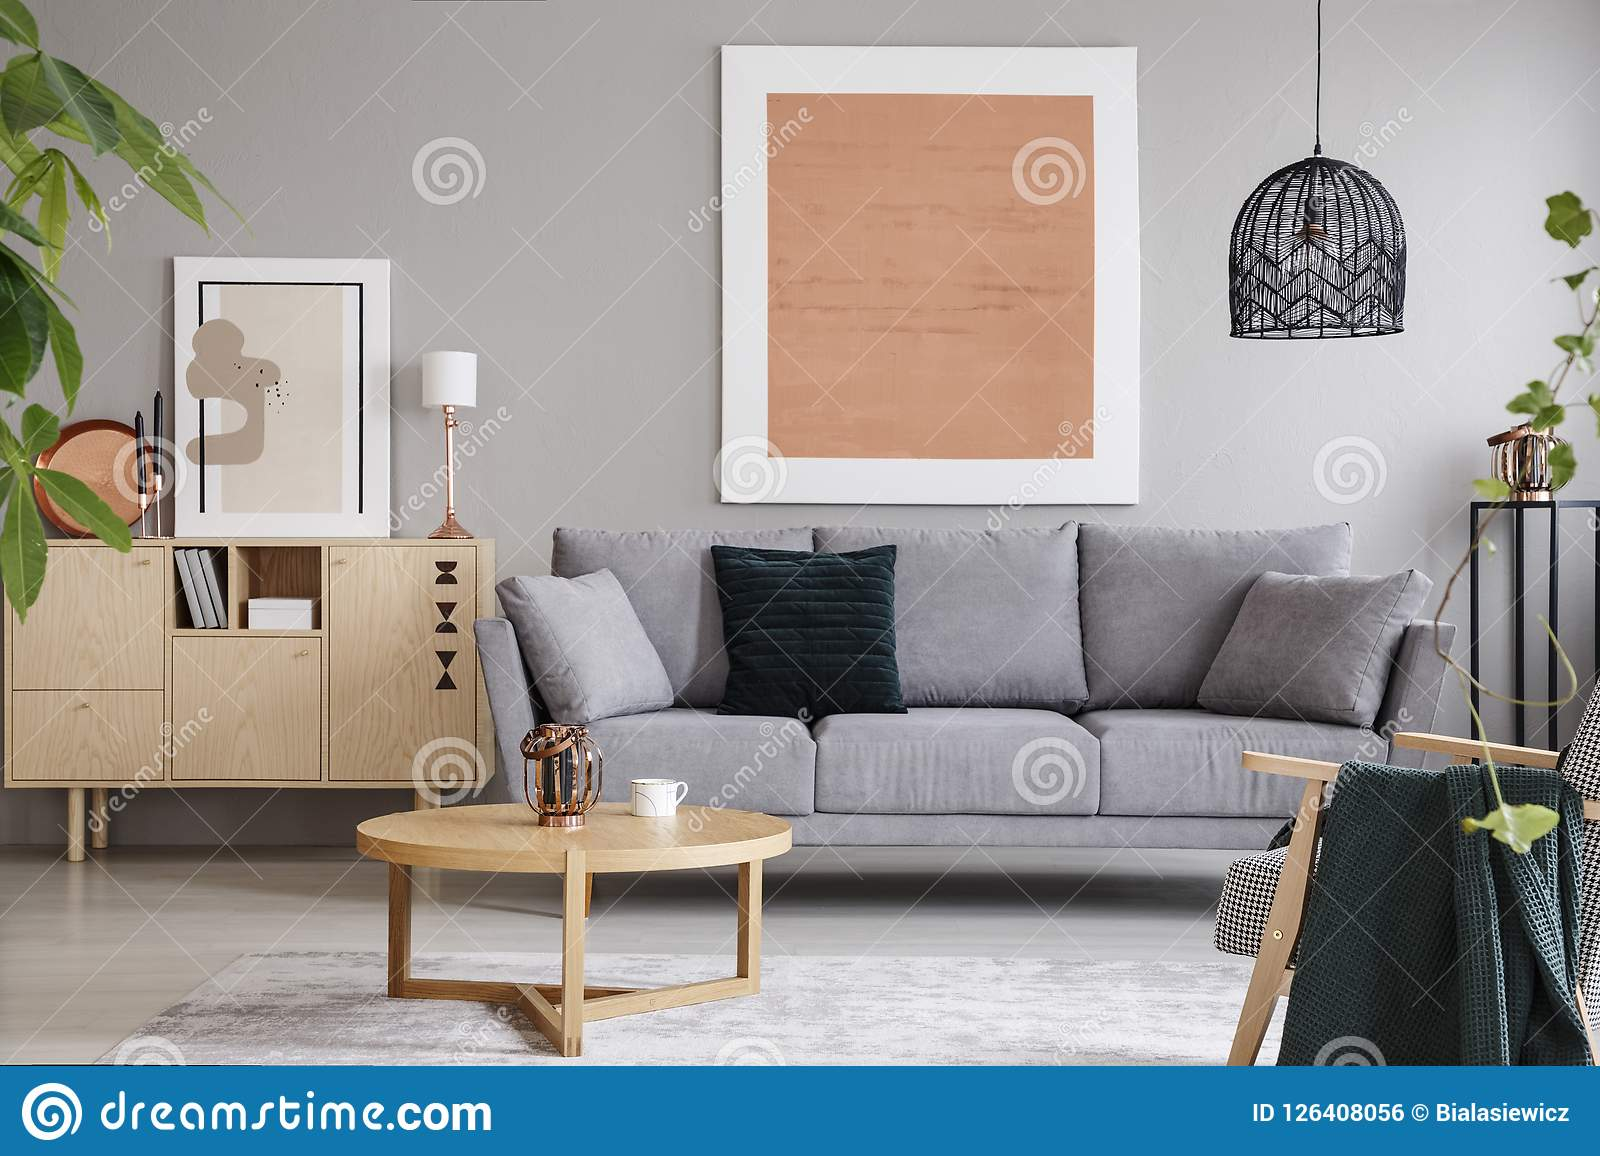 Rose Gold Painting And Poster In Bright Loft Interior With